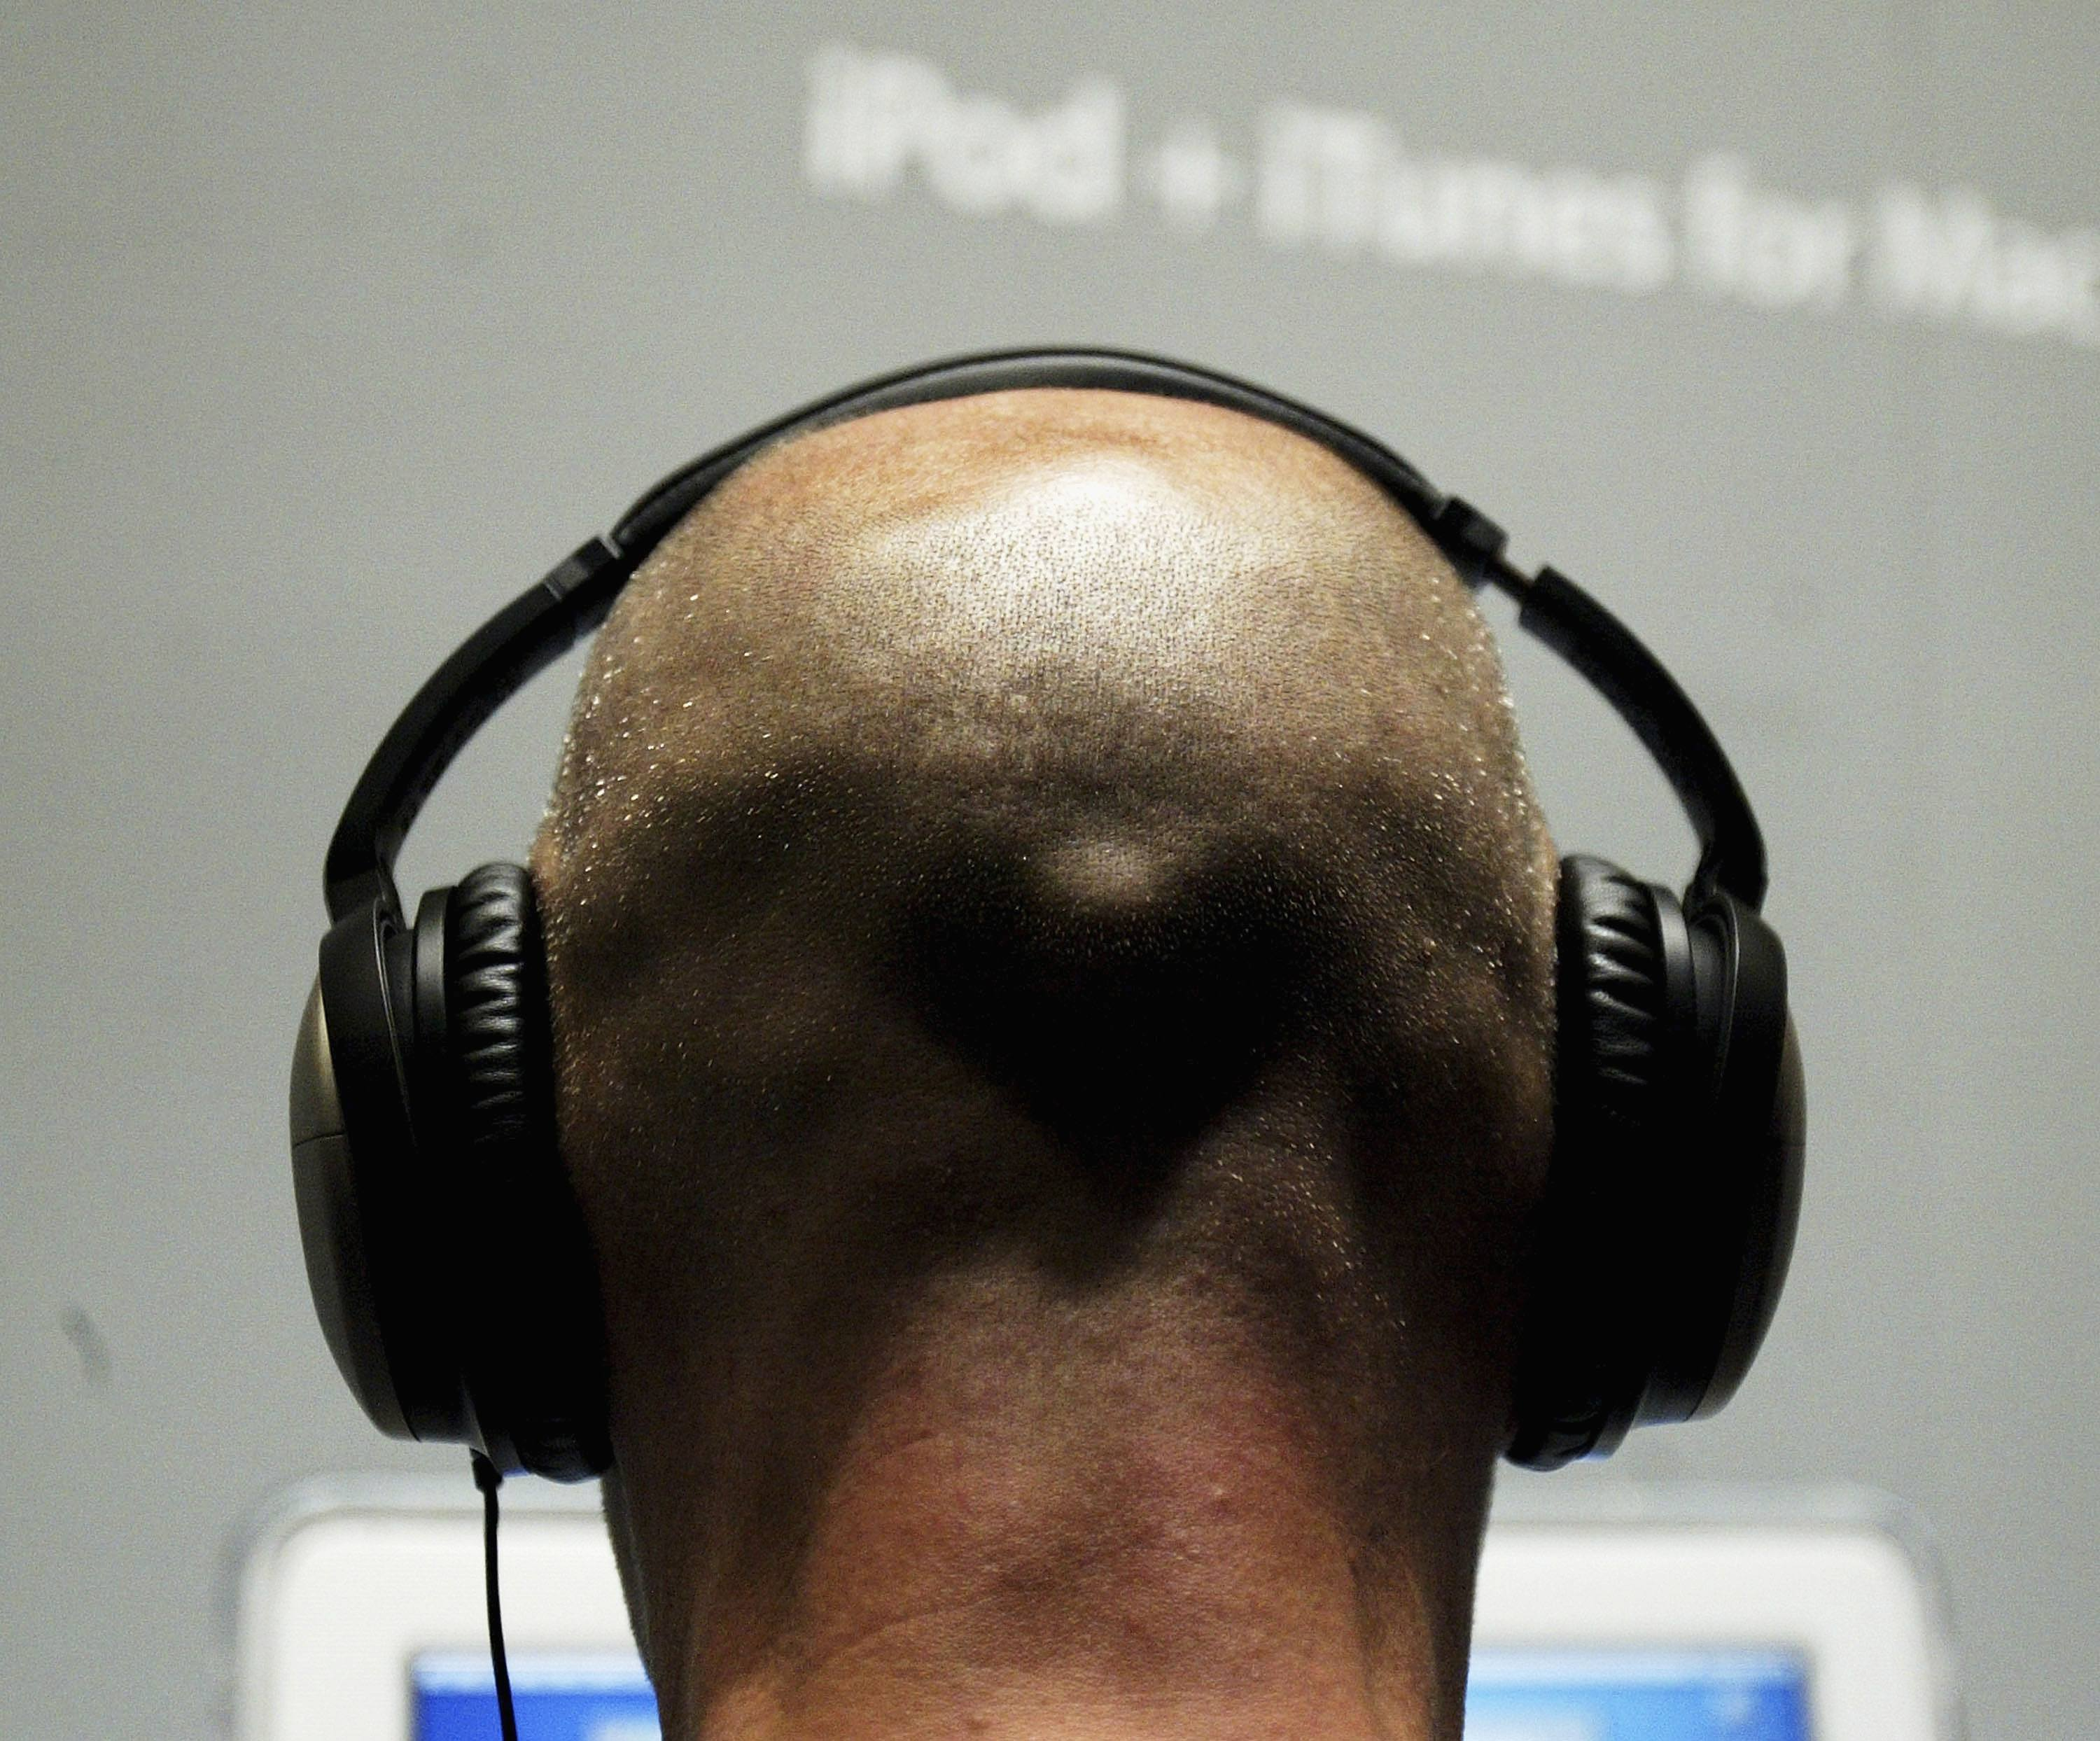 A man listens to music with headphones